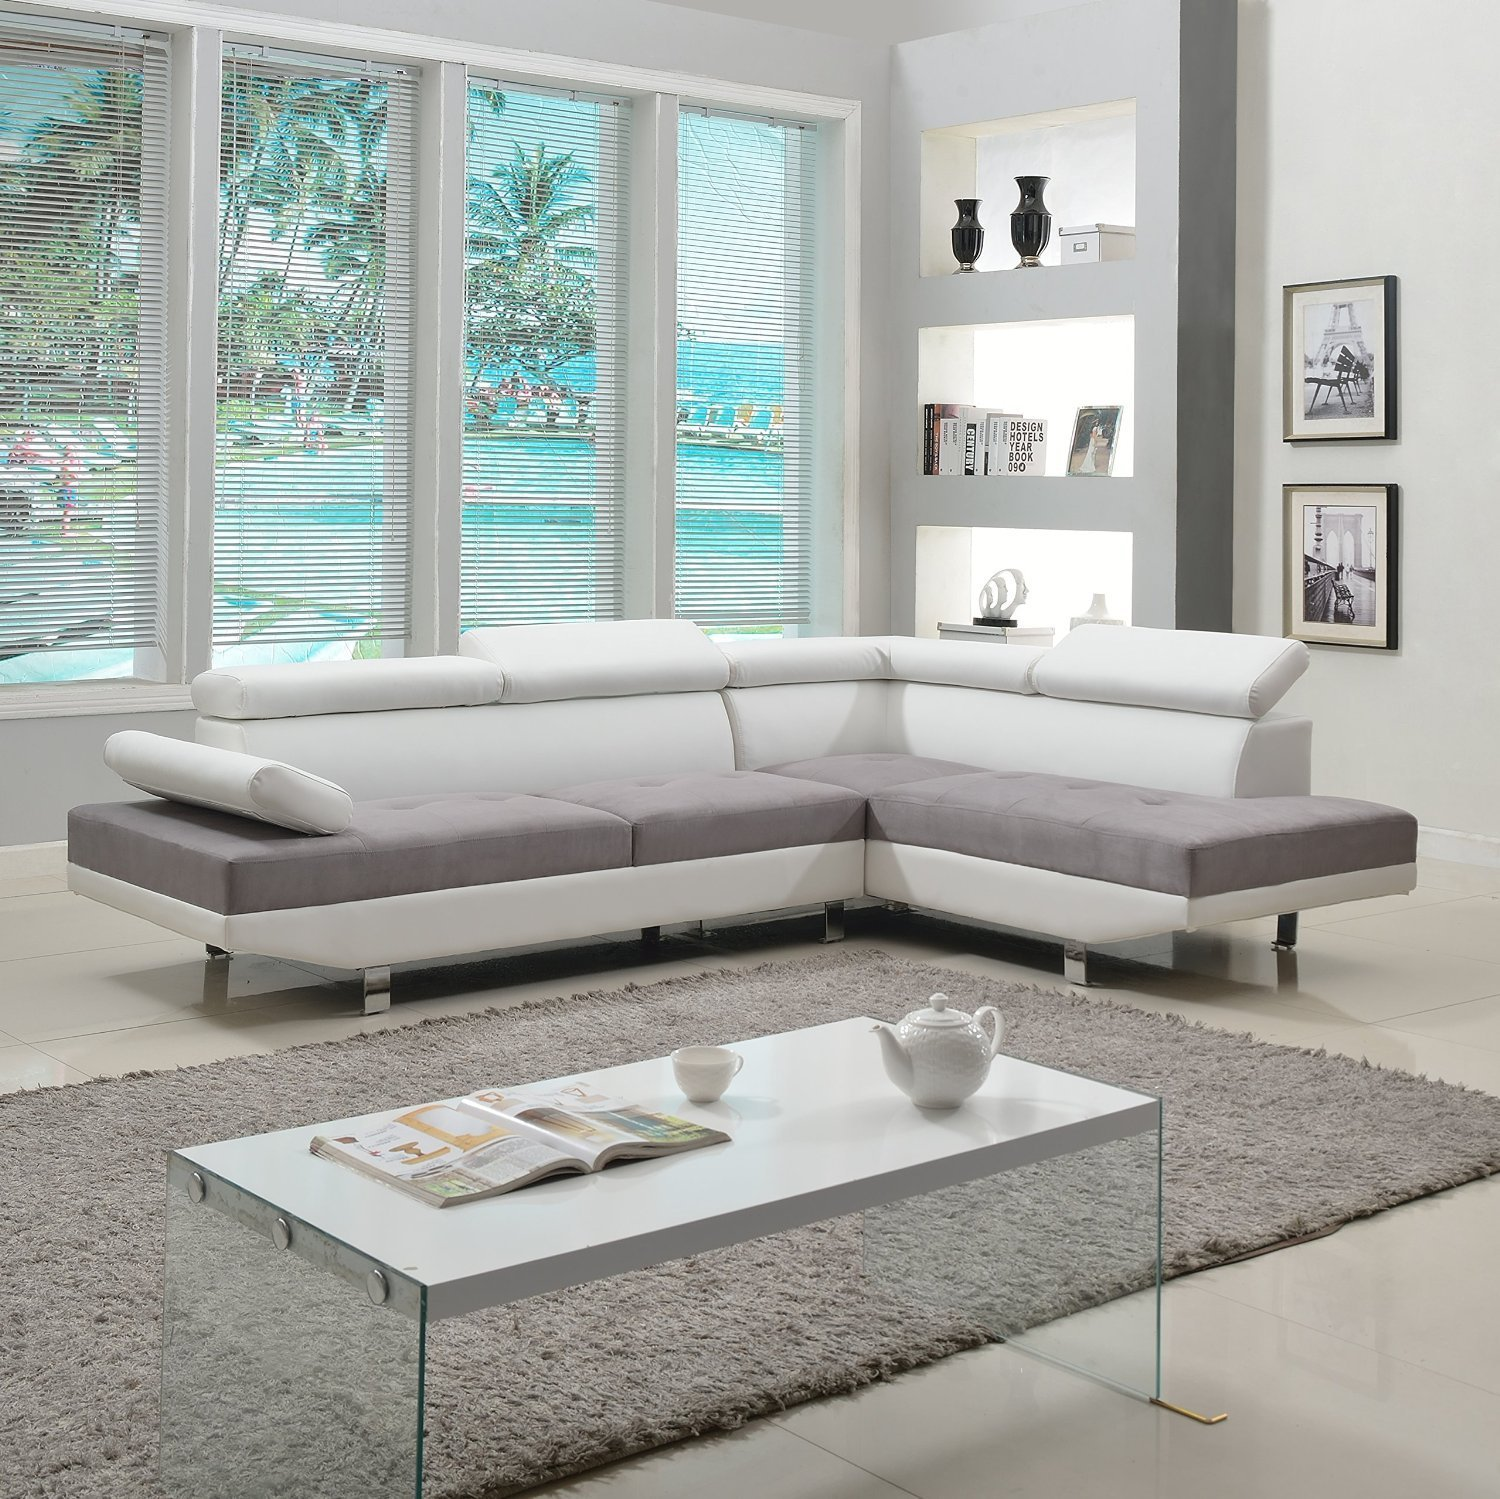 Modern living room furniture review find the best one for Modern living room furniture